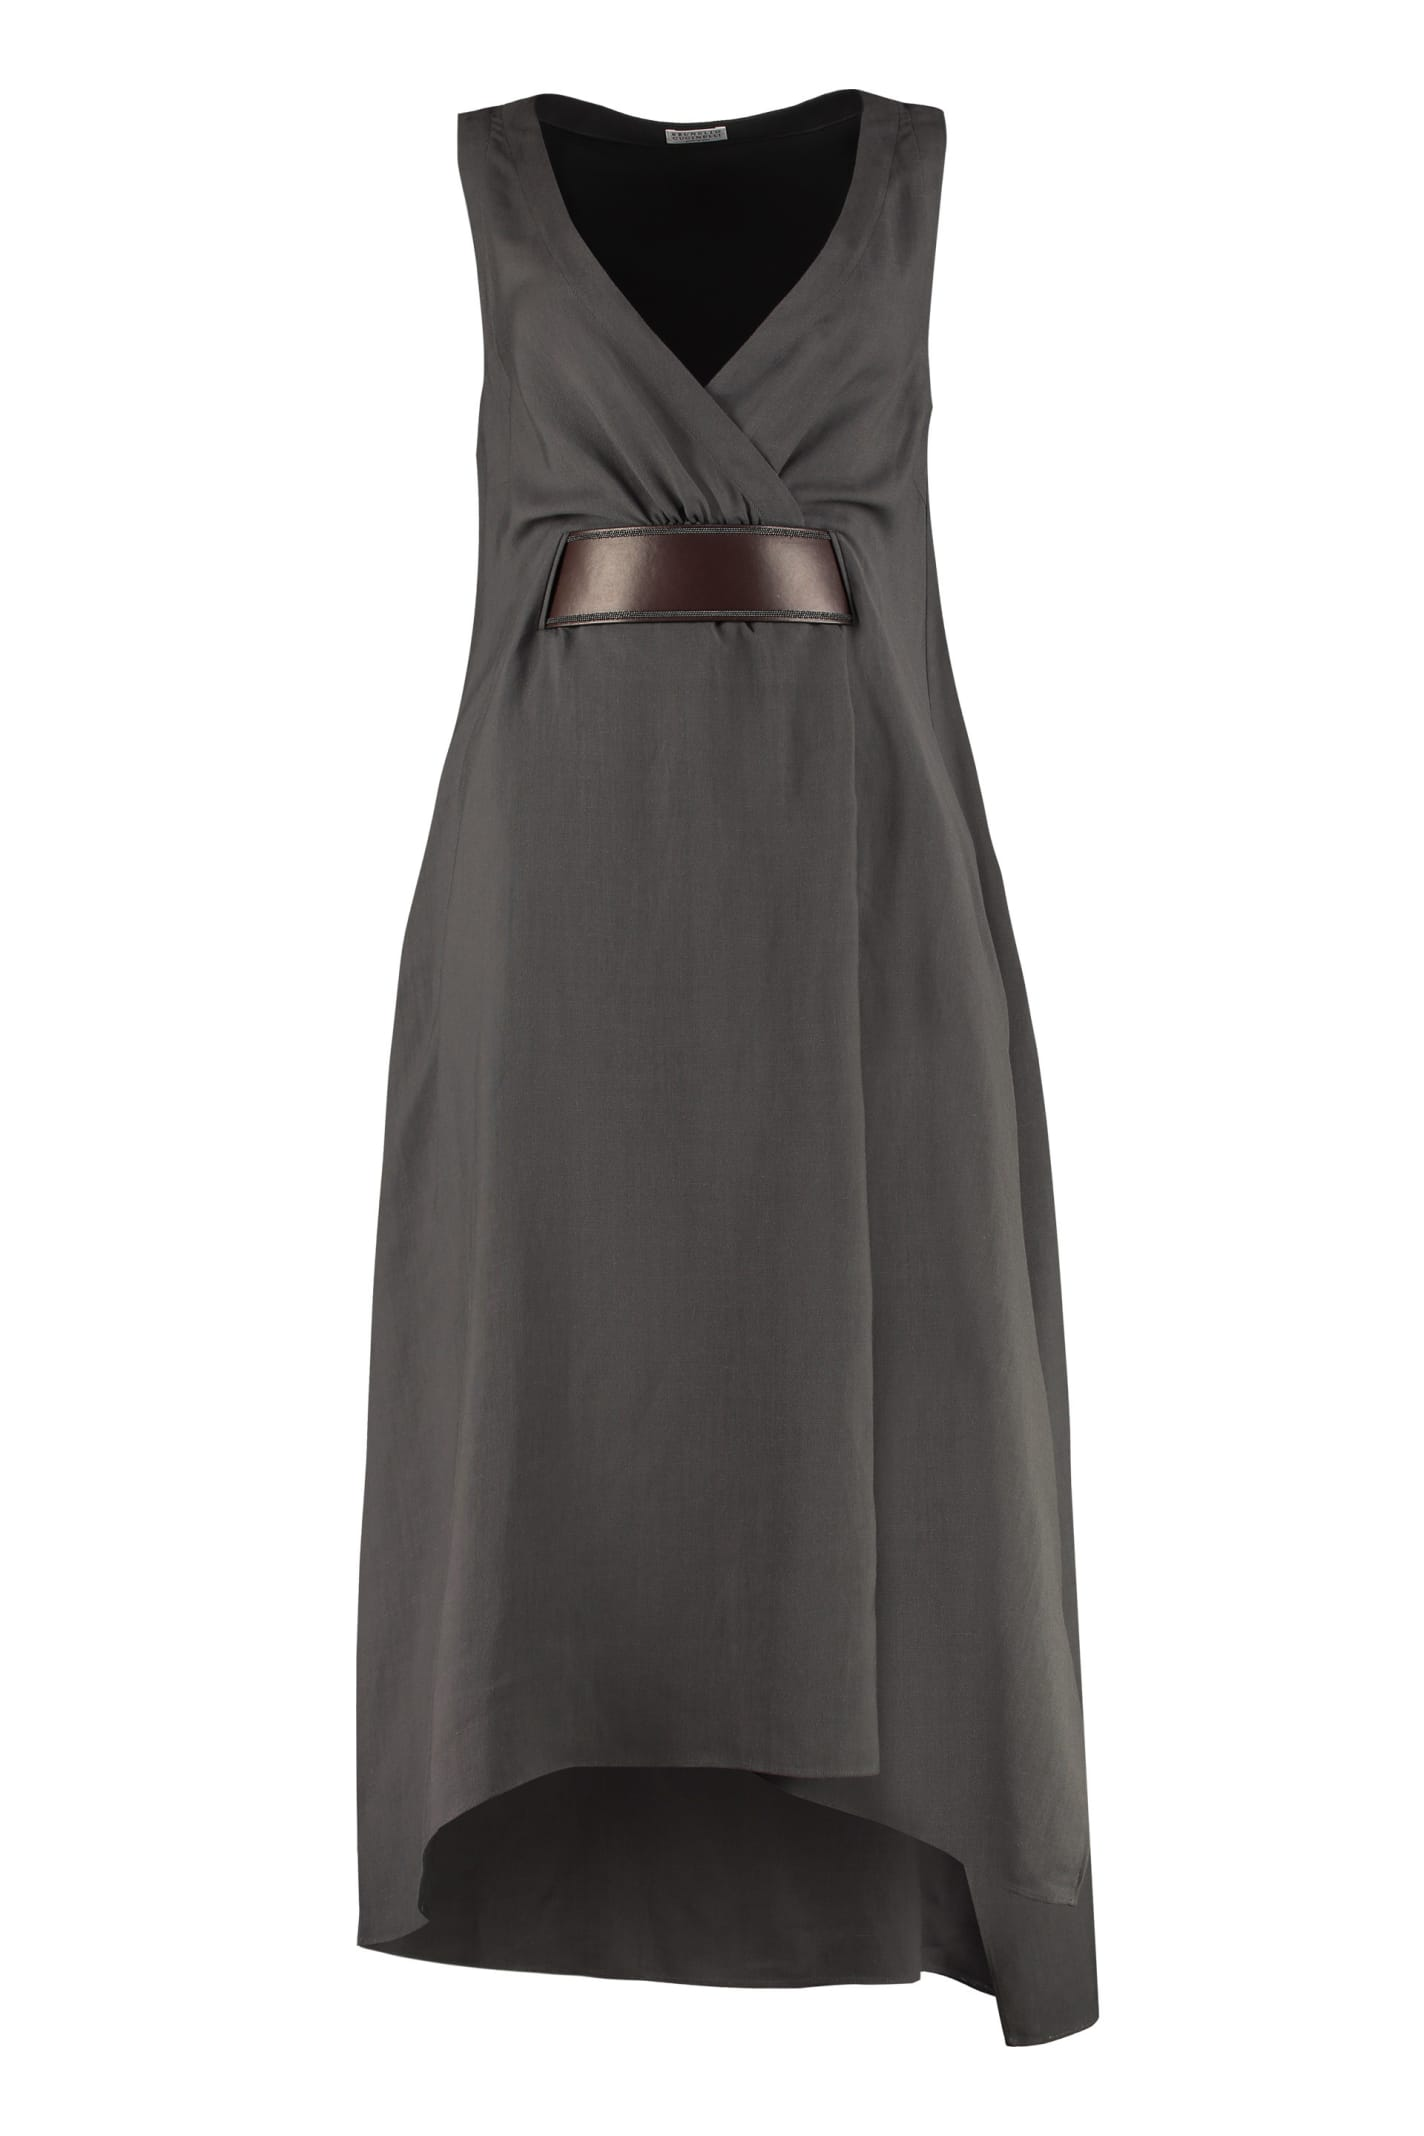 Buy Brunello Cucinelli Midi Dress With Belt online, shop Brunello Cucinelli with free shipping